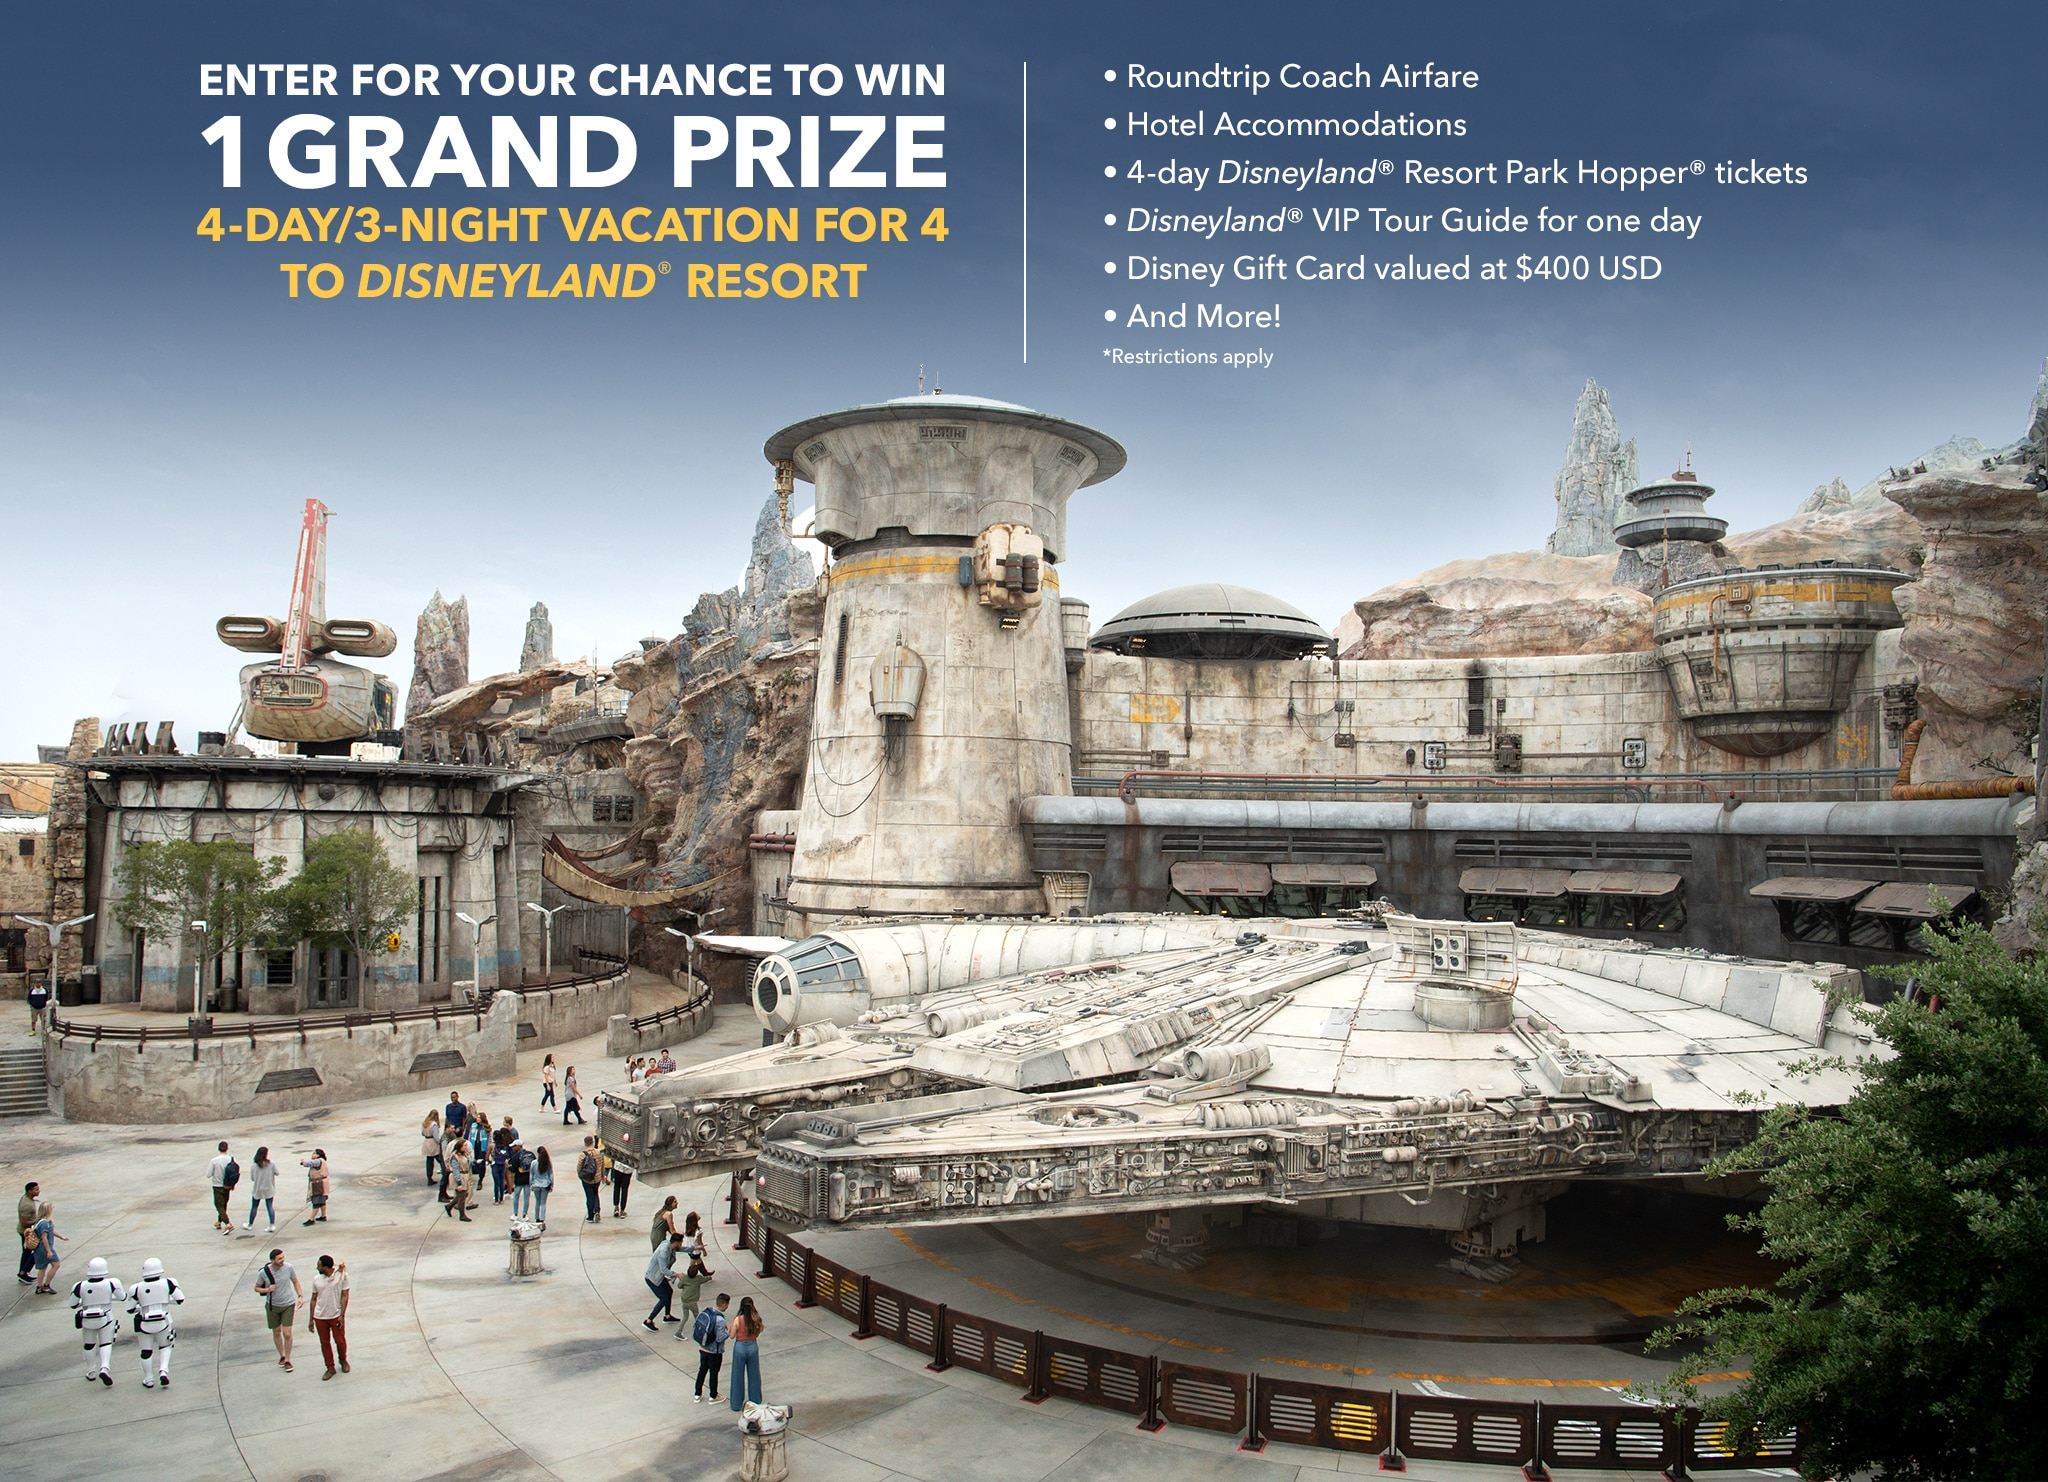 Enter for your chance to win 1 grand prize 4 day 3 night vacation for 4 to Disneyland resort. Roundtrip coach airfare, hotel accommodations, 4 day Disneyland Resort Park Hopper tickets, Disneyland VIP tour guide for one day, Disney gift card valued at 400 USD and more! Restrictions apply